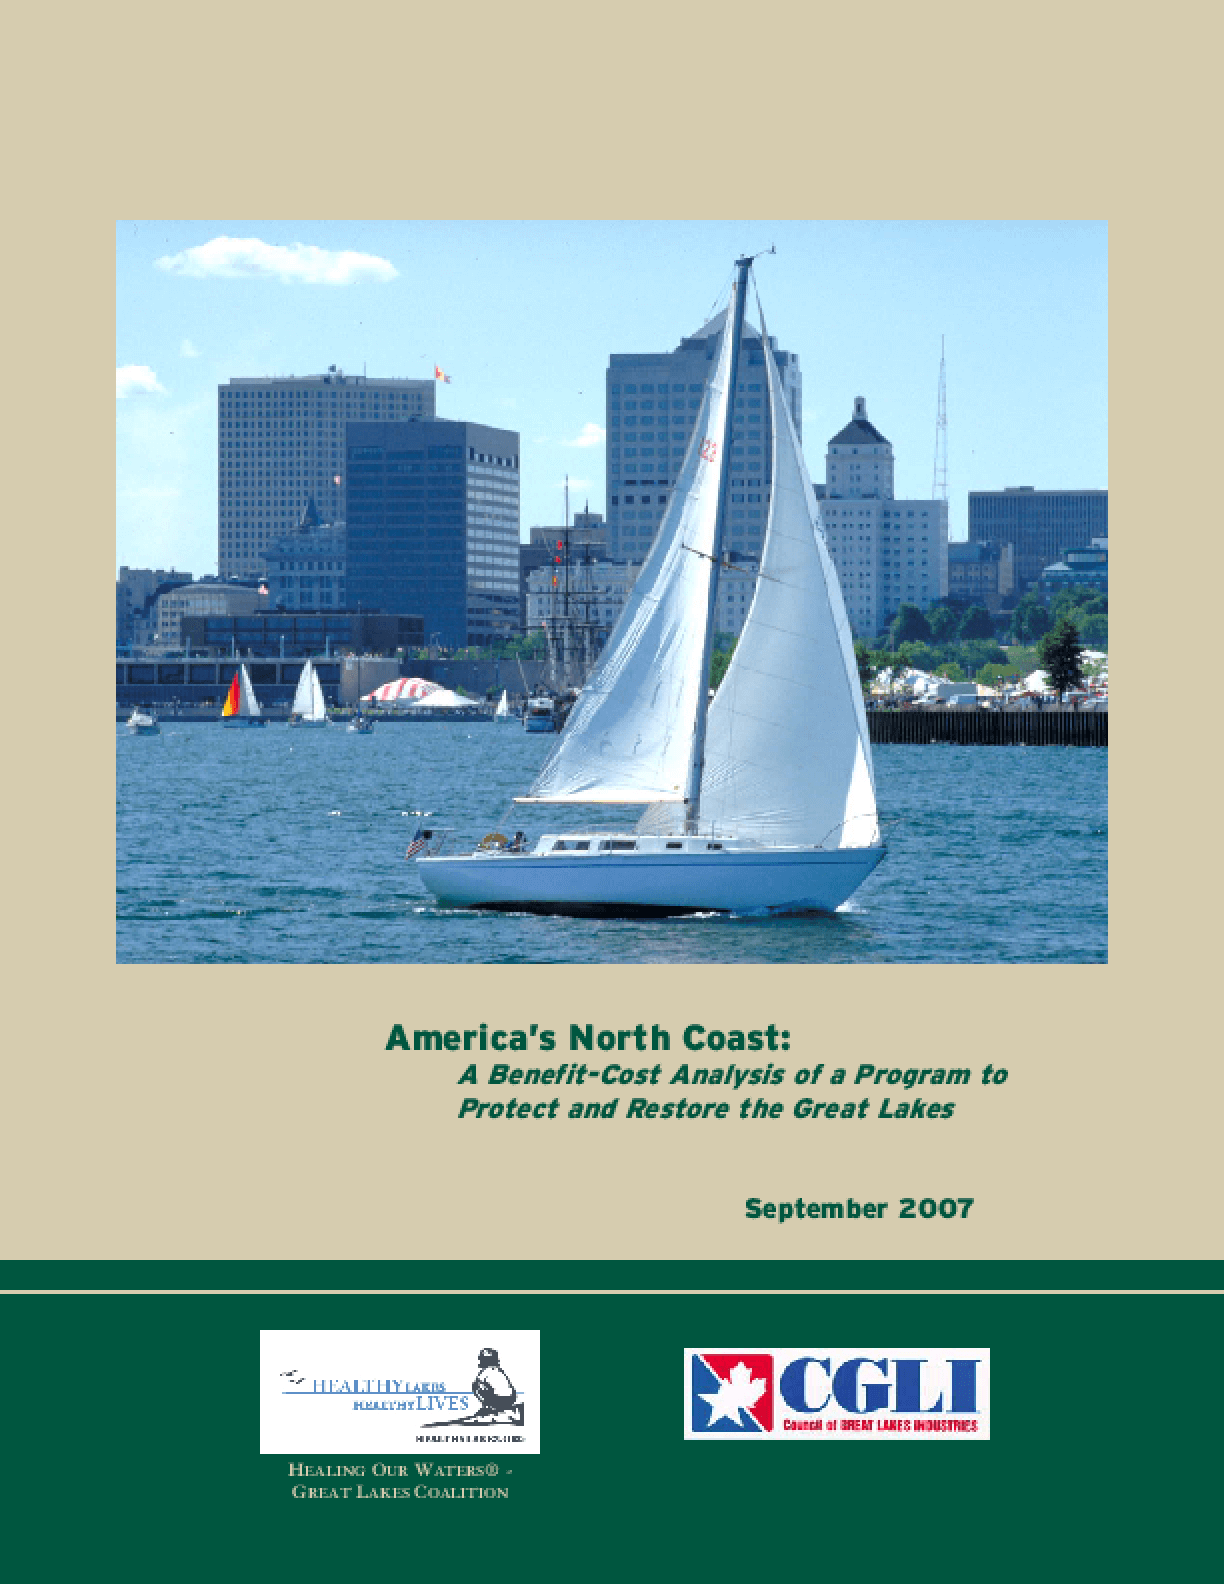 America's North Coast: A Benefit-Cost Analysis of a Program to Protect and Restore the Great Lakes